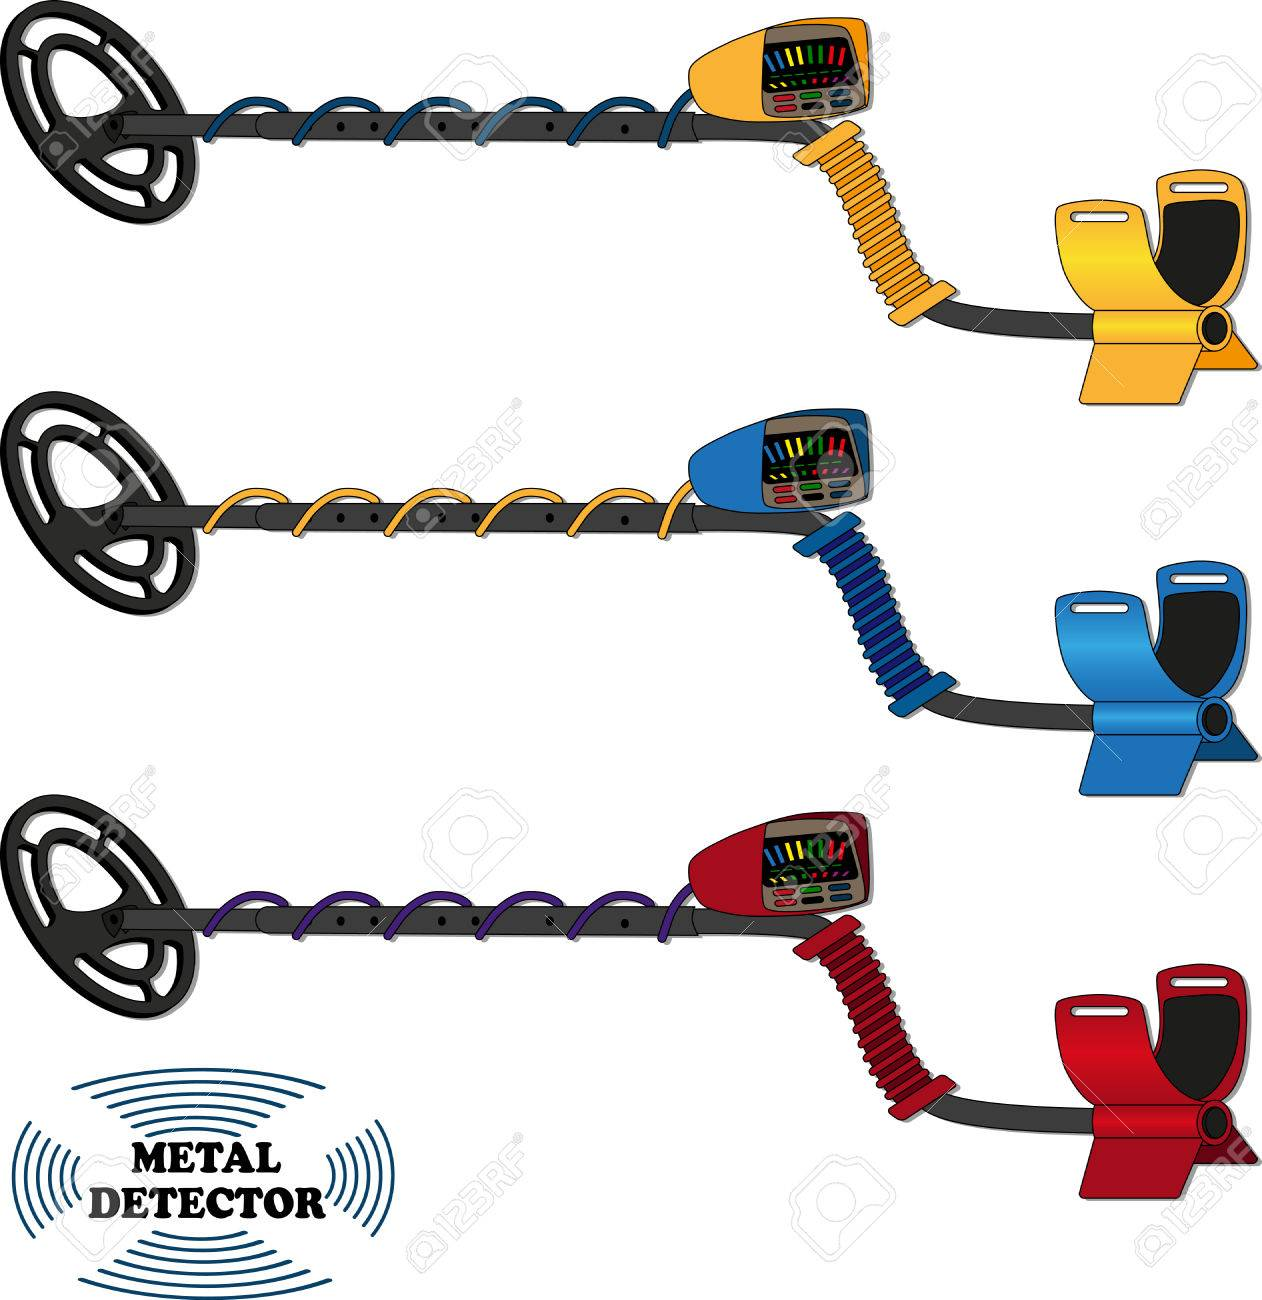 Metal Detector Drawing At Free For Personal Use Bfo Detectors Circuit Diagram Electronic Circuits 1262x1300 Vector Of The On A White Background Royalty